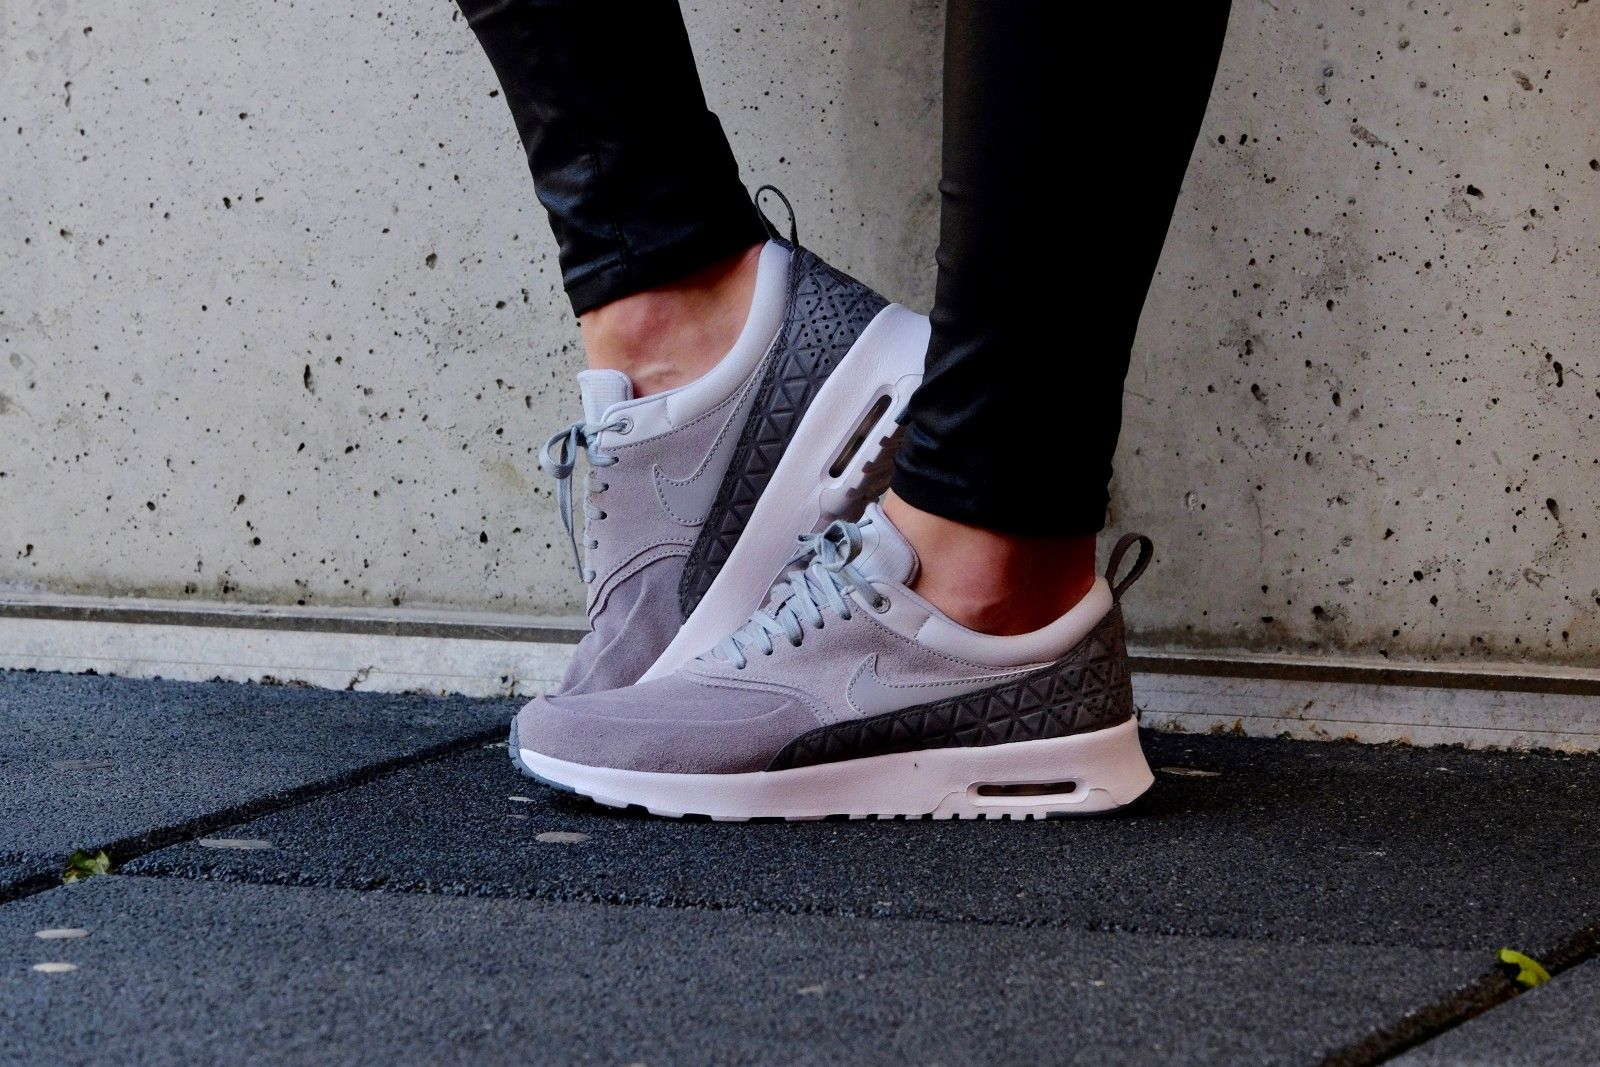 Nike WMNS Air Max Thea Premium Leather Matte Silver Pure